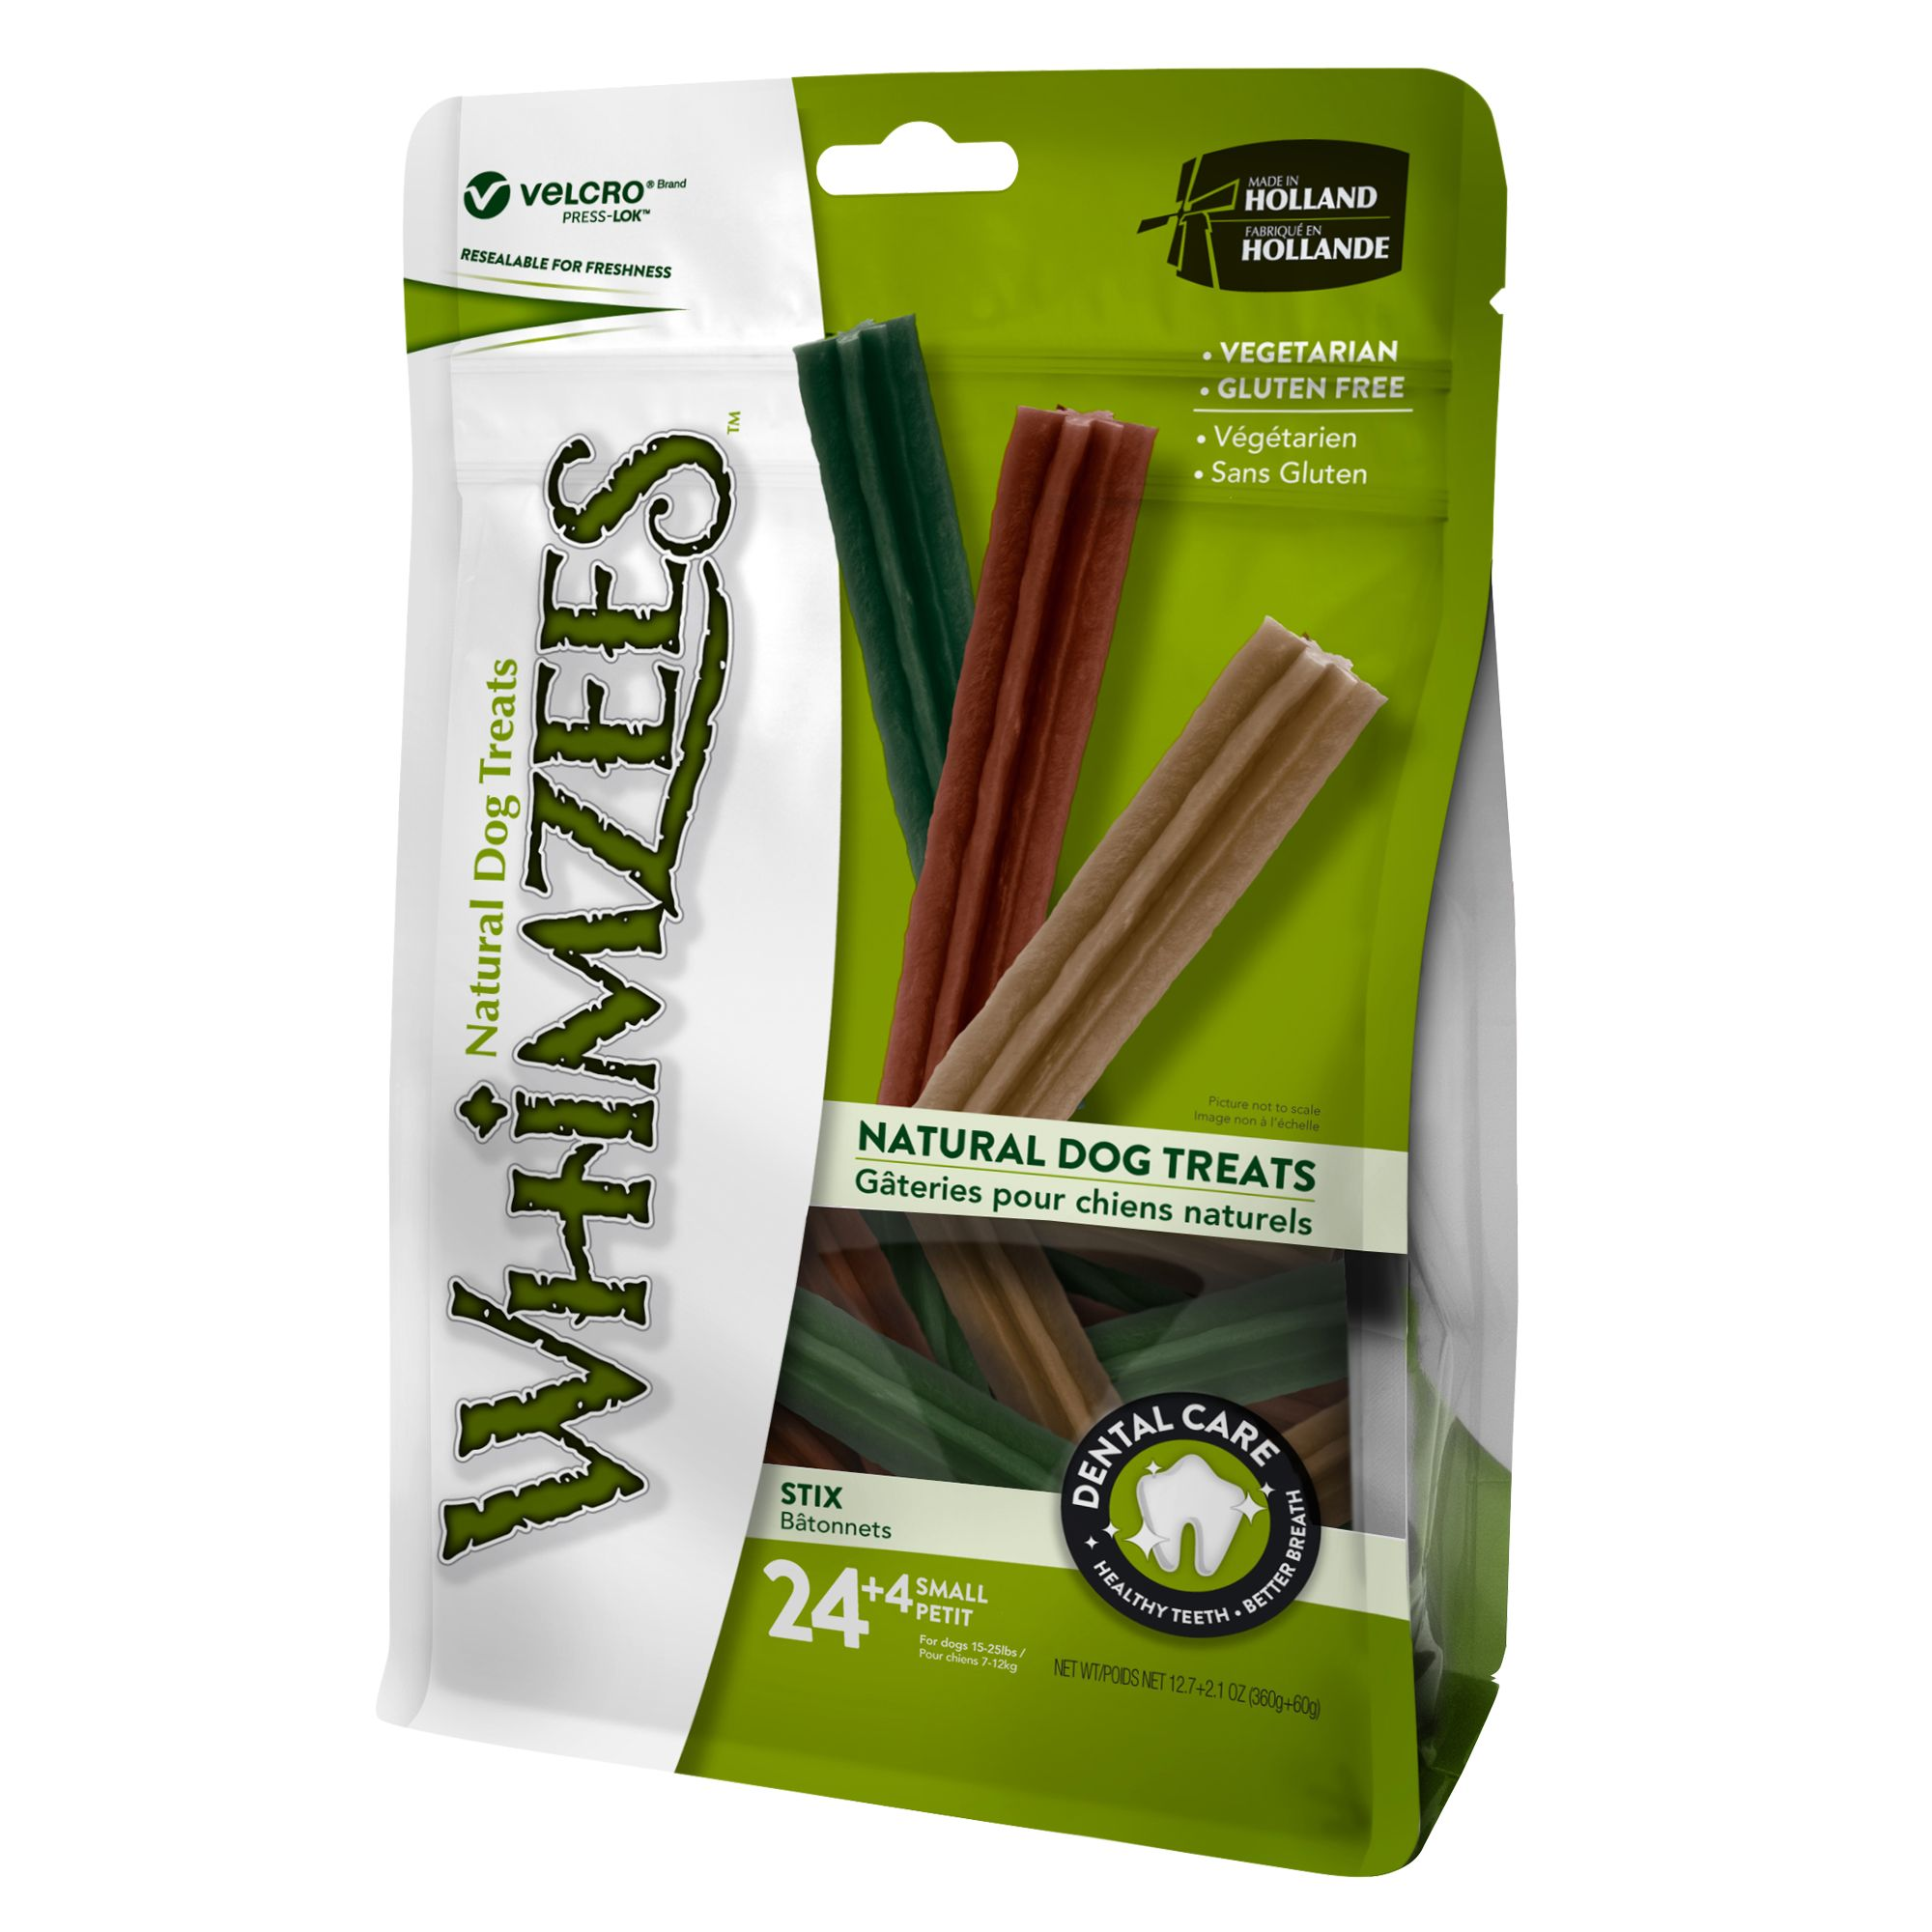 Whimzees Dental Care Sticks Small Dog Treat Natural Gluten Free Vegetarian Size 28 Count